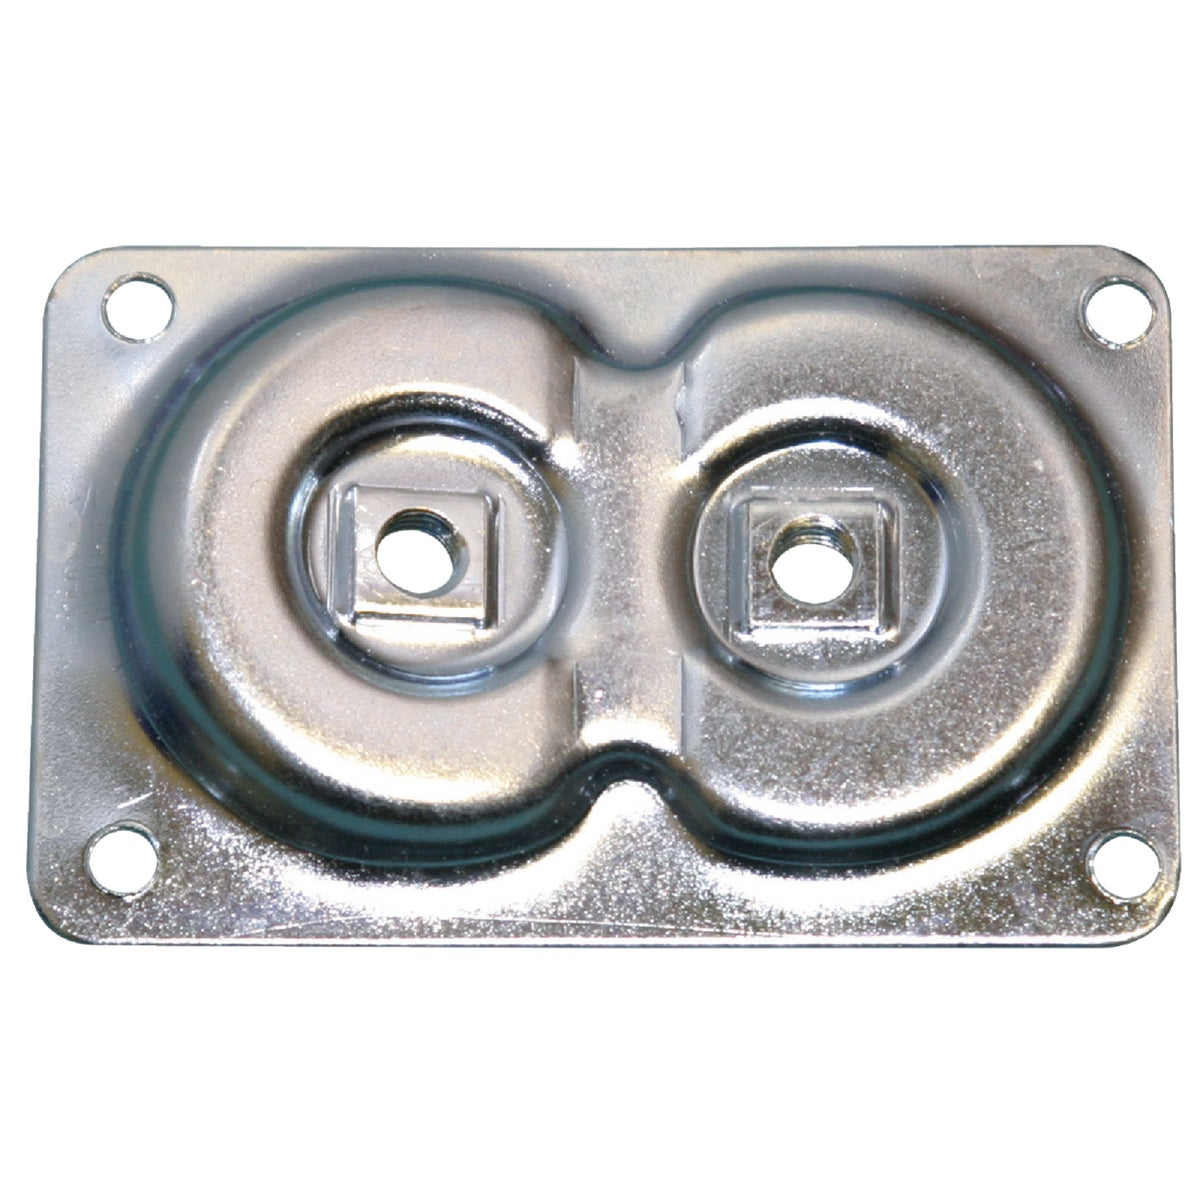 DUAL TOP PLATE - 2750 by Waddell Mfg Company